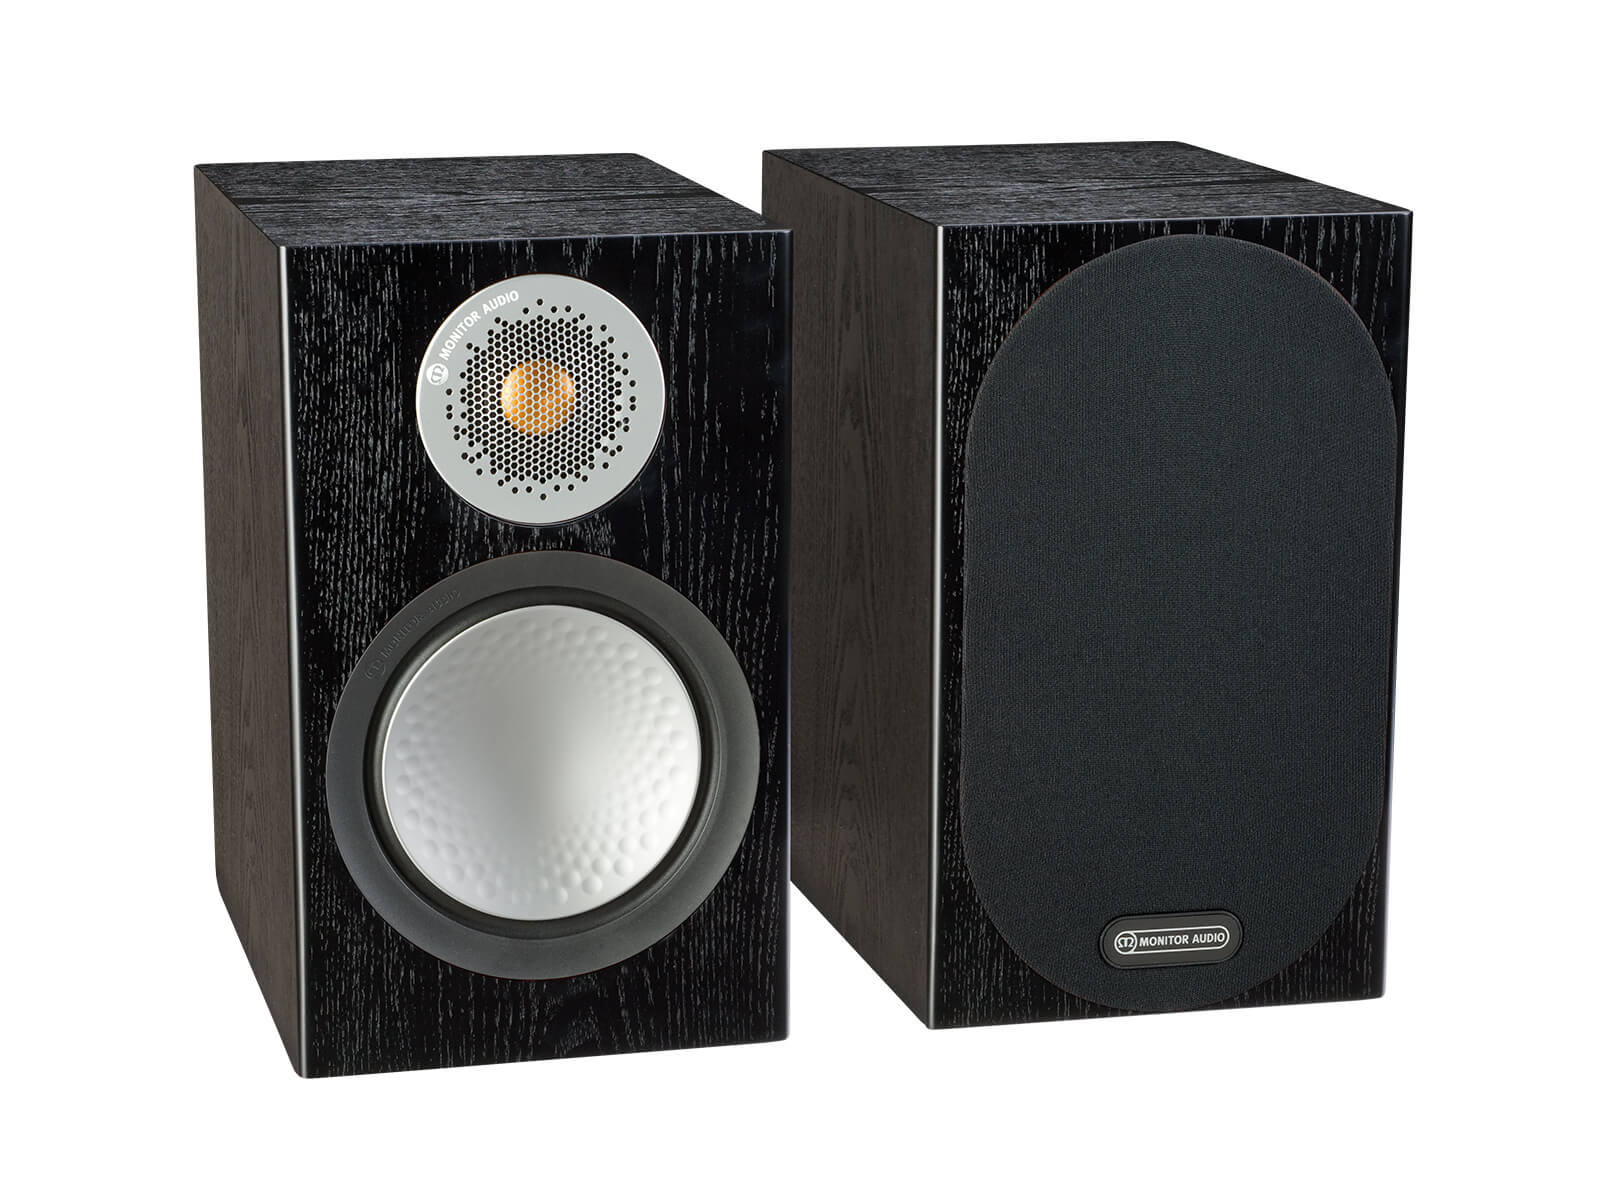 Silver 50, bookshelf speakers, with and without grille in a black oak finish.